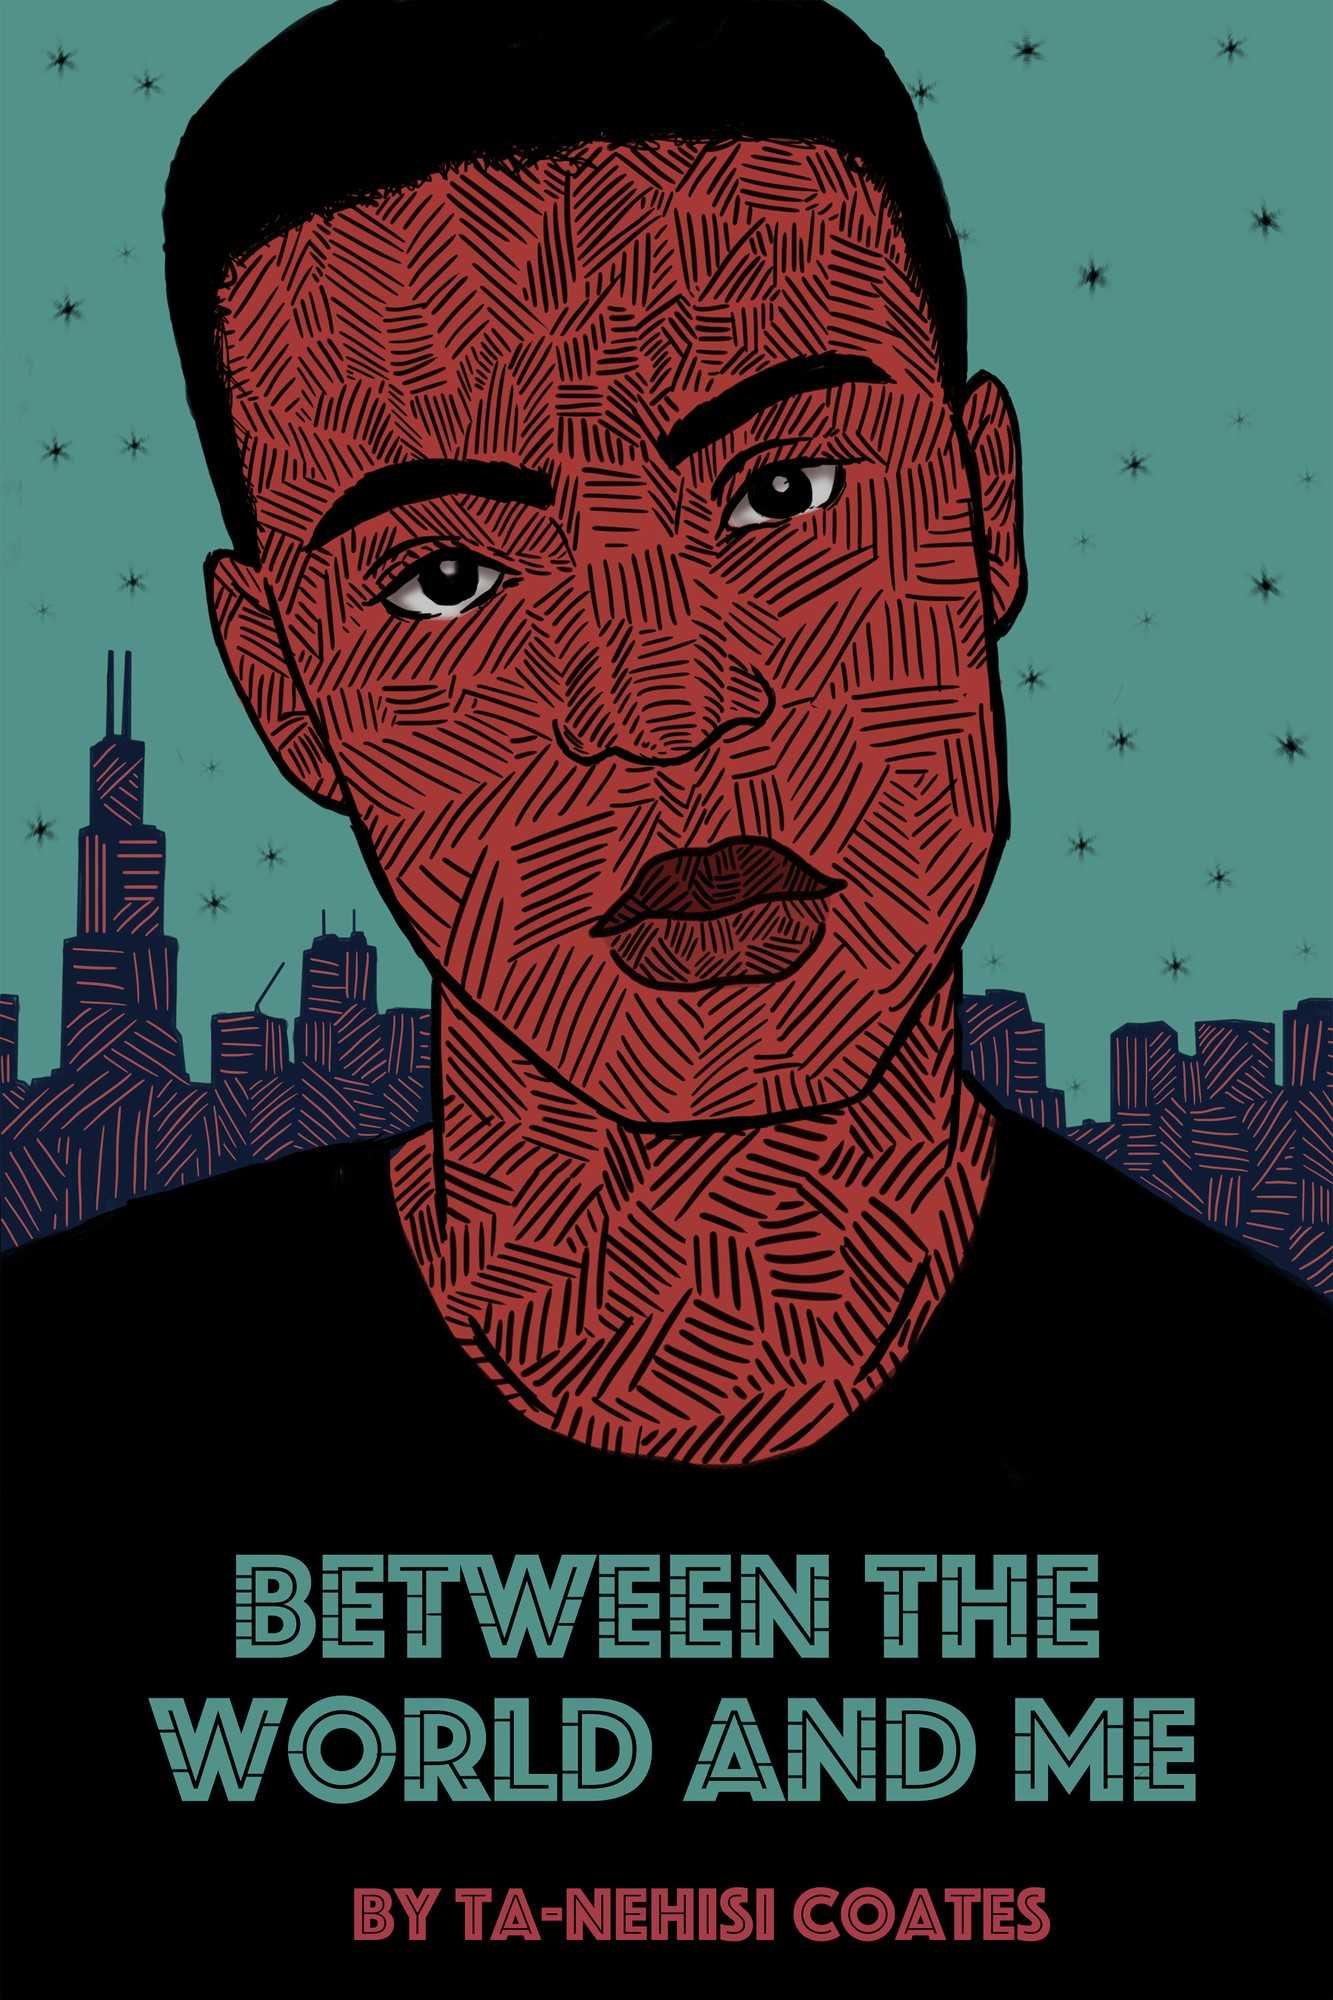 """Illustration shows a man wearing a black shirt and the words, """"Between the world and me by Ta-Nehisi Coates"""